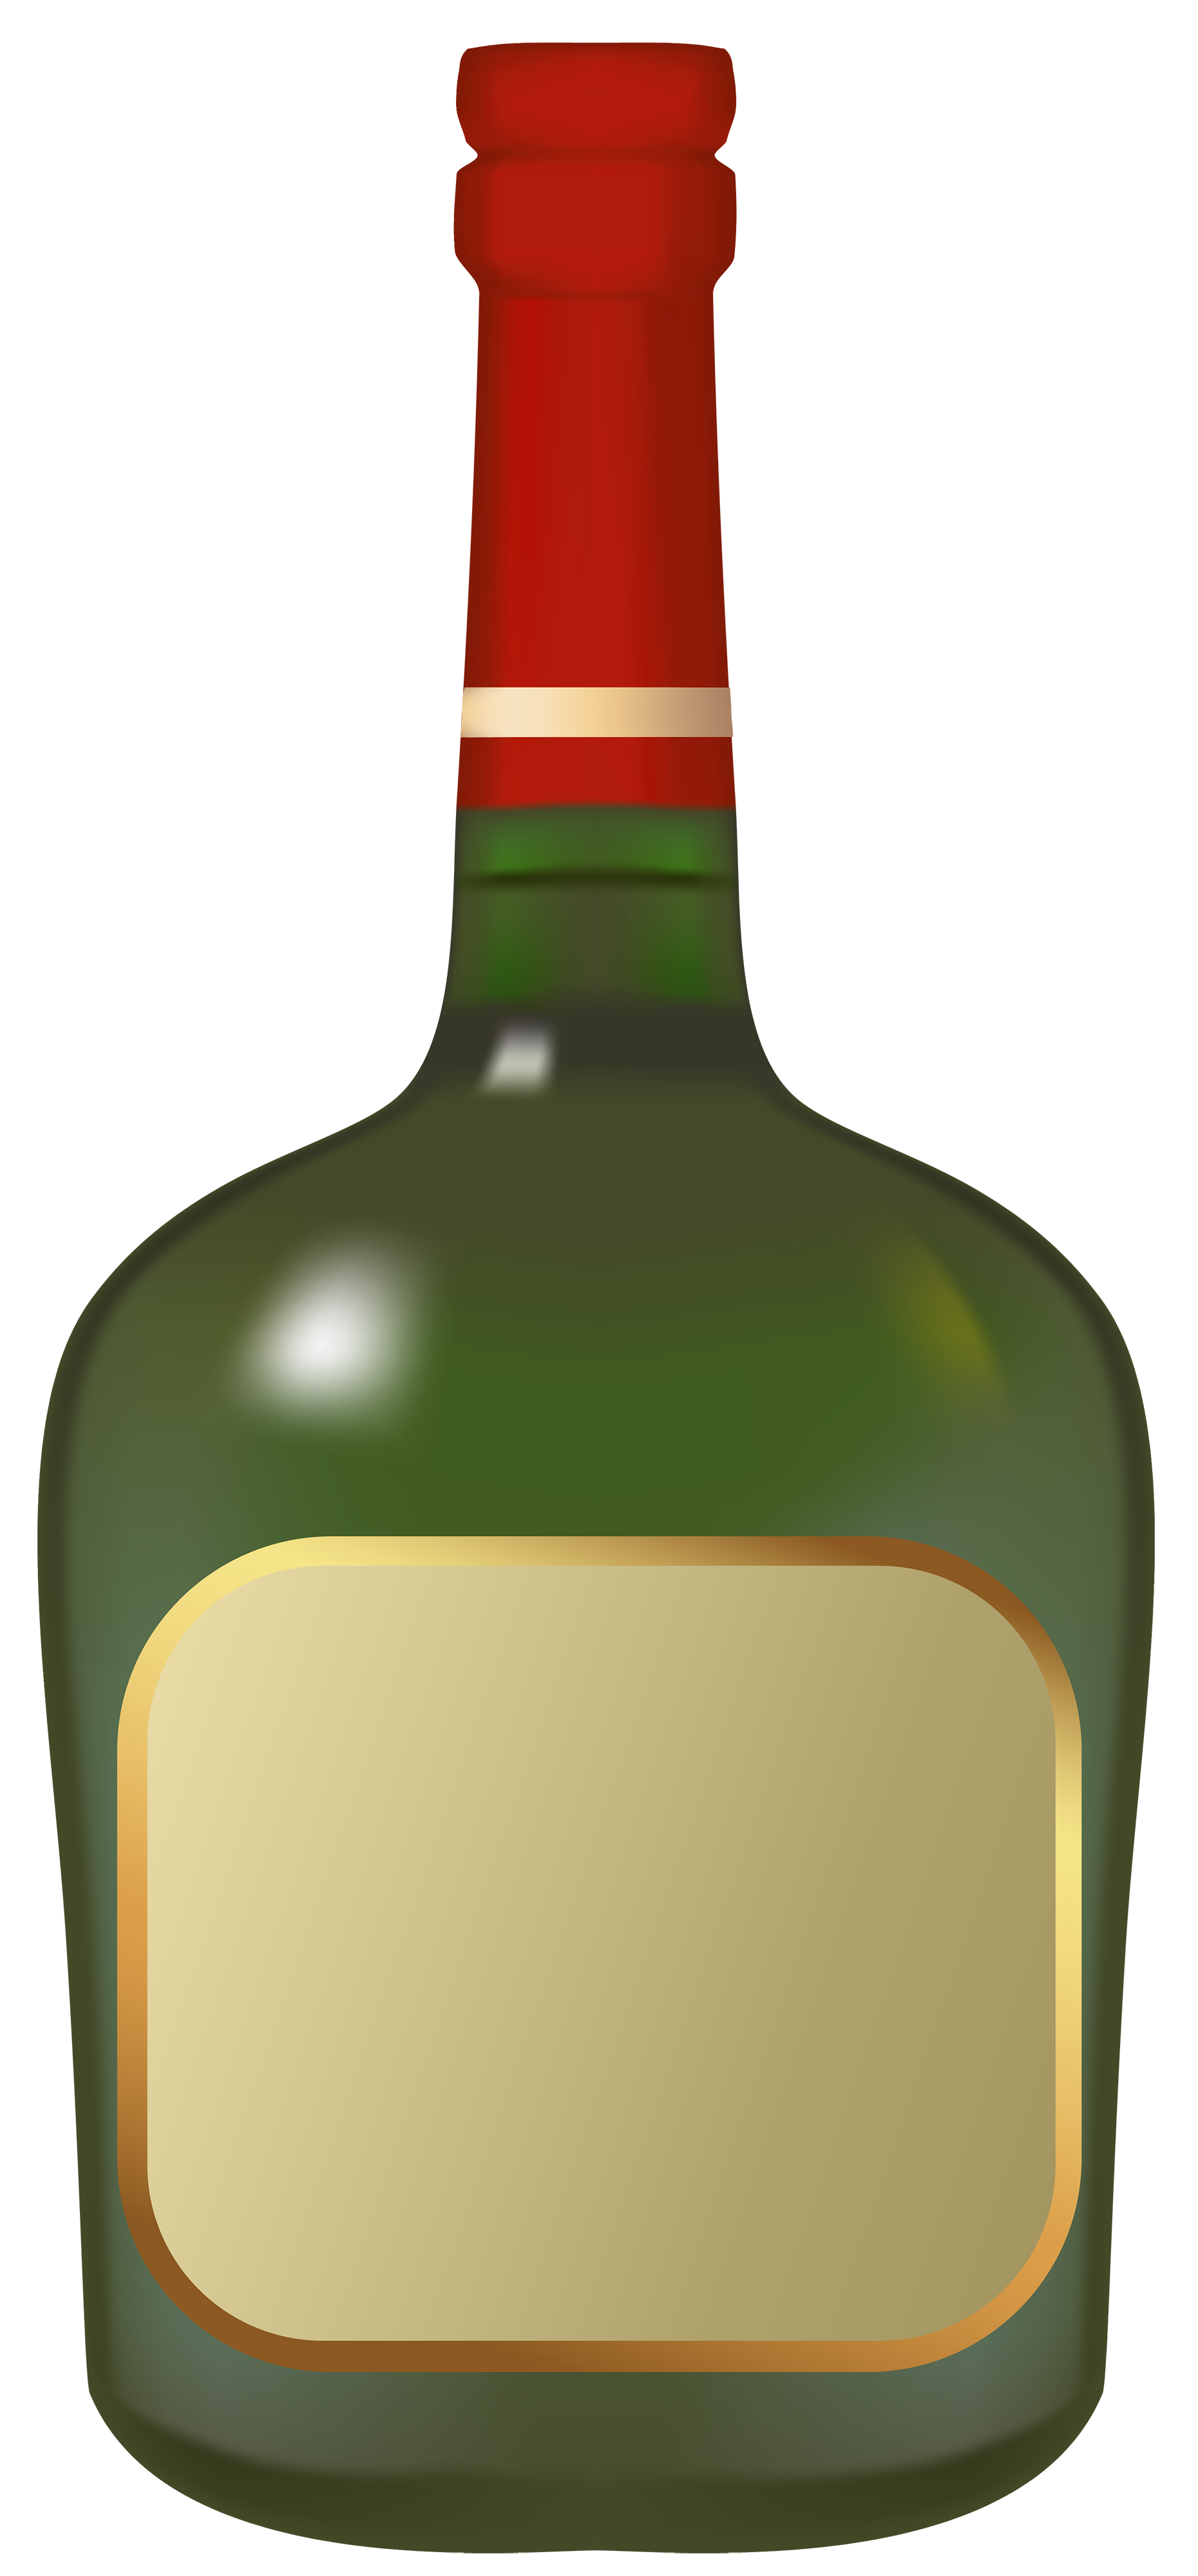 Clipart best web. Liquor bottle png graphic freeuse library